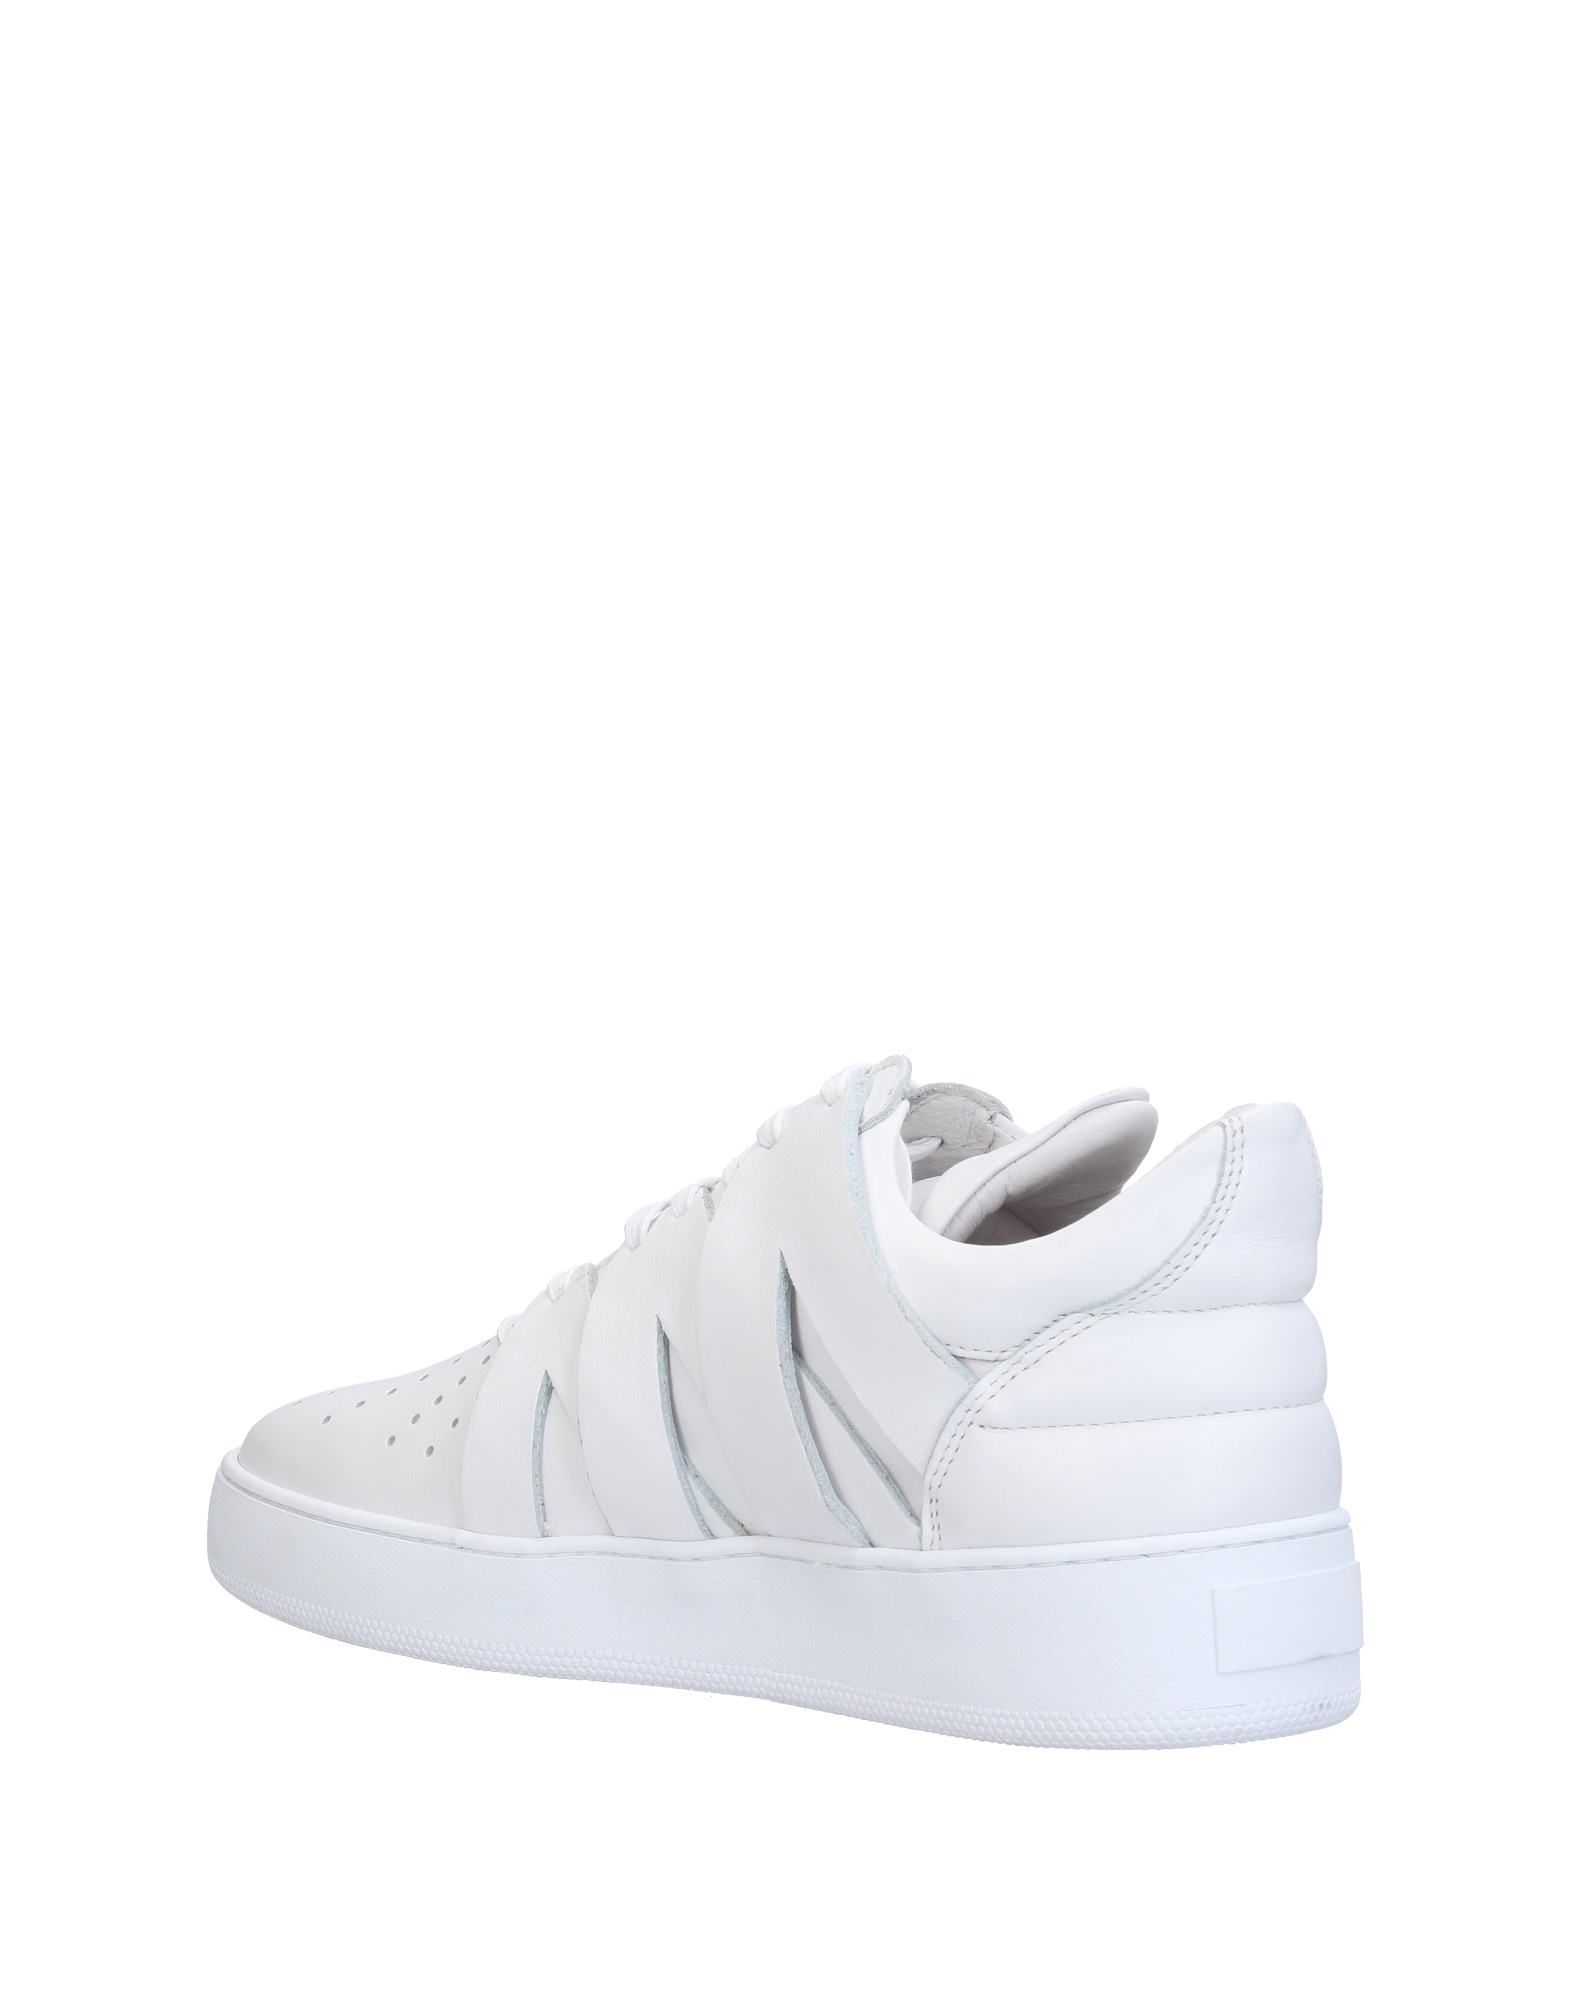 Sneakers Filling Pieces Homme - Sneakers Filling Pieces sur